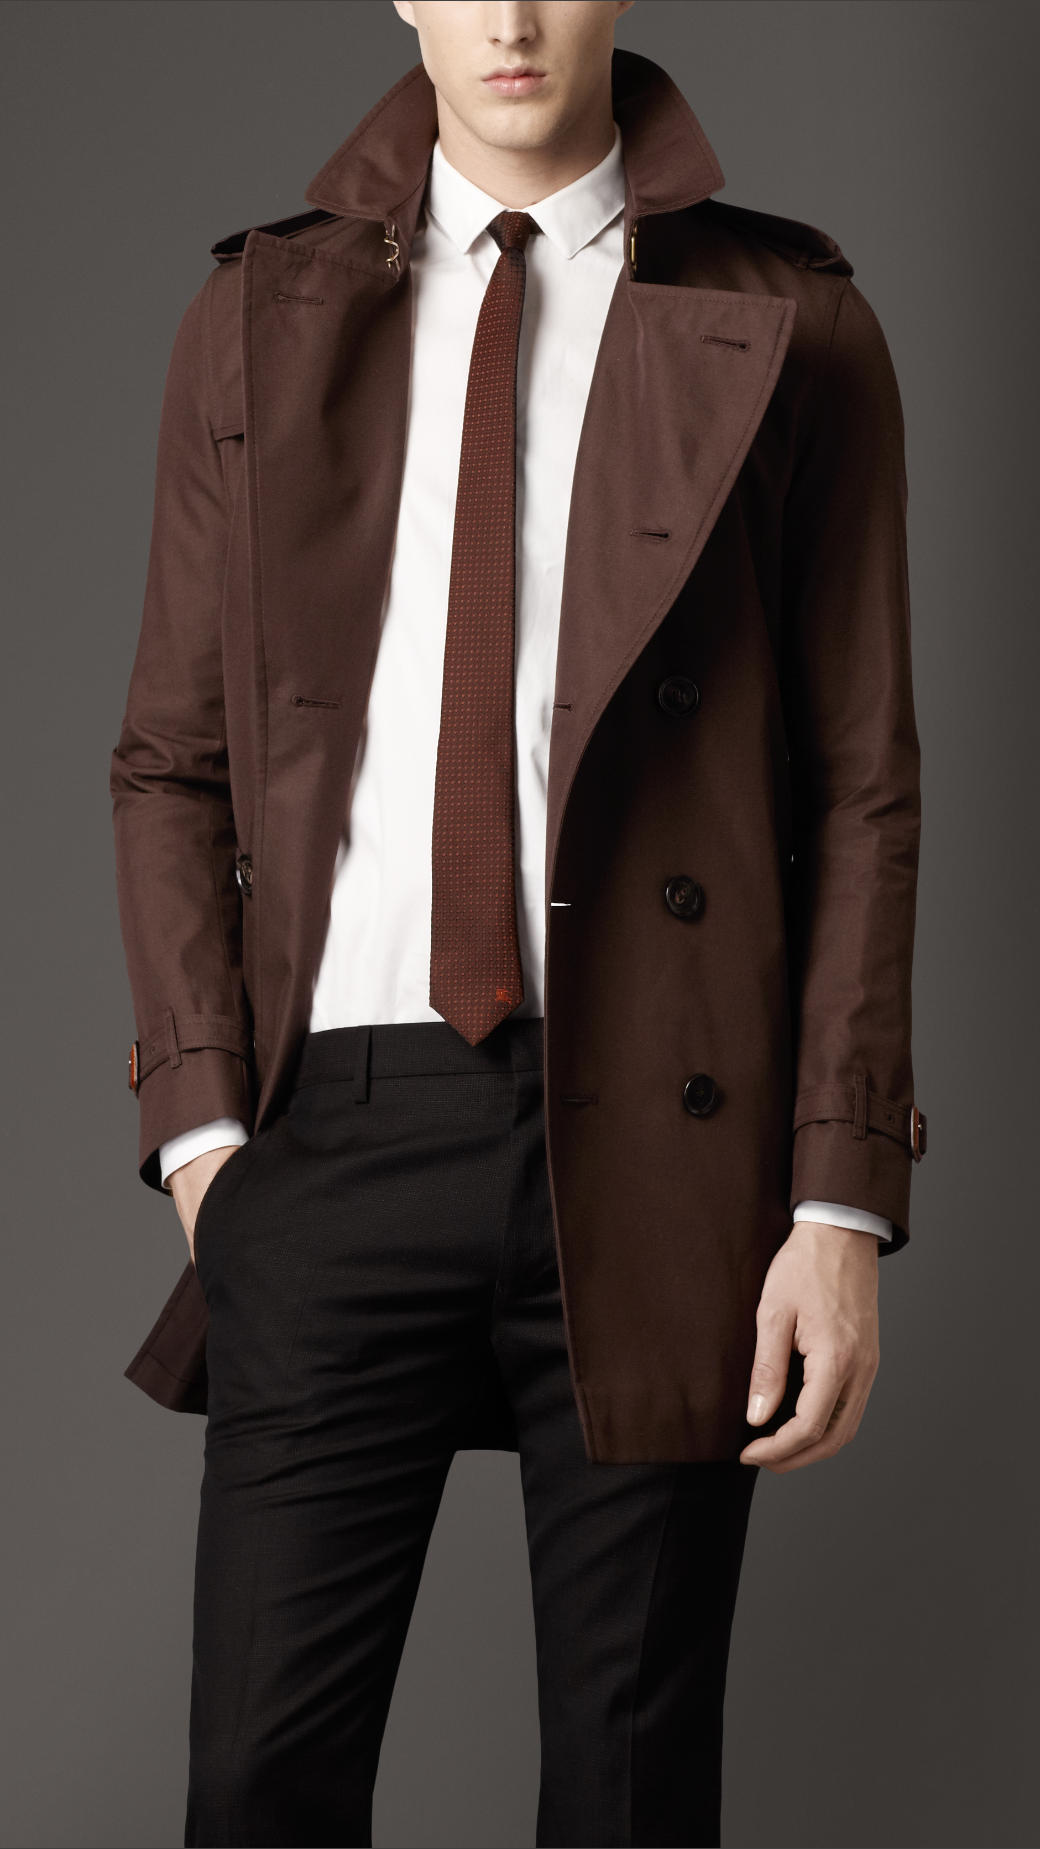 Images of Mens Brown Trench Coat - Reikian